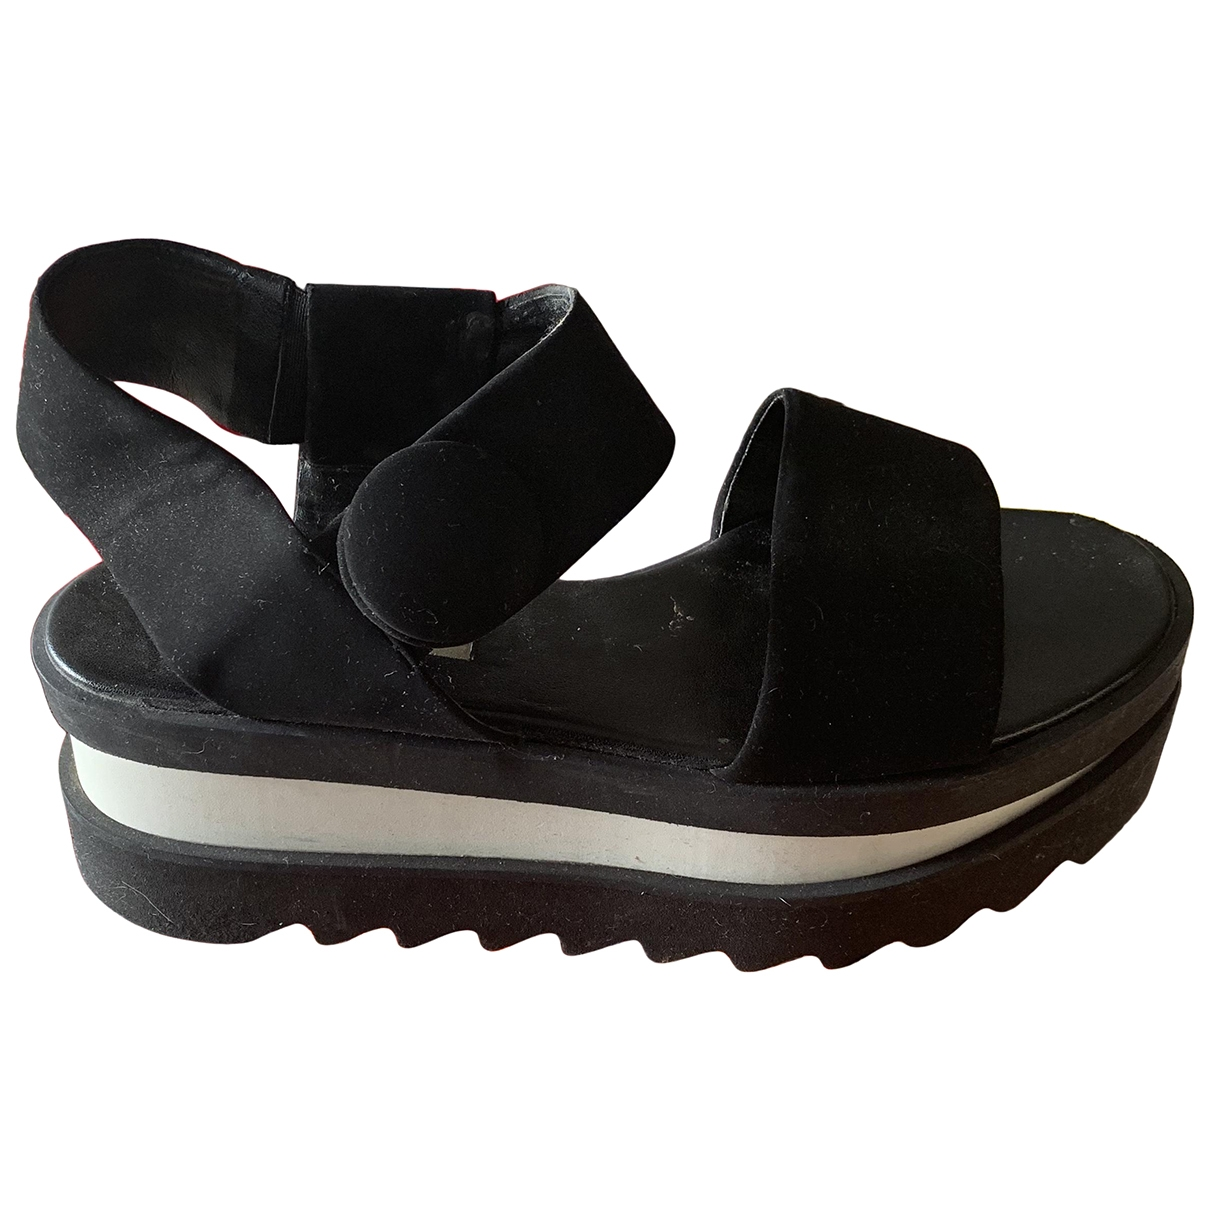 Stella Mccartney \N Black Rubber Sandals for Women 38 EU